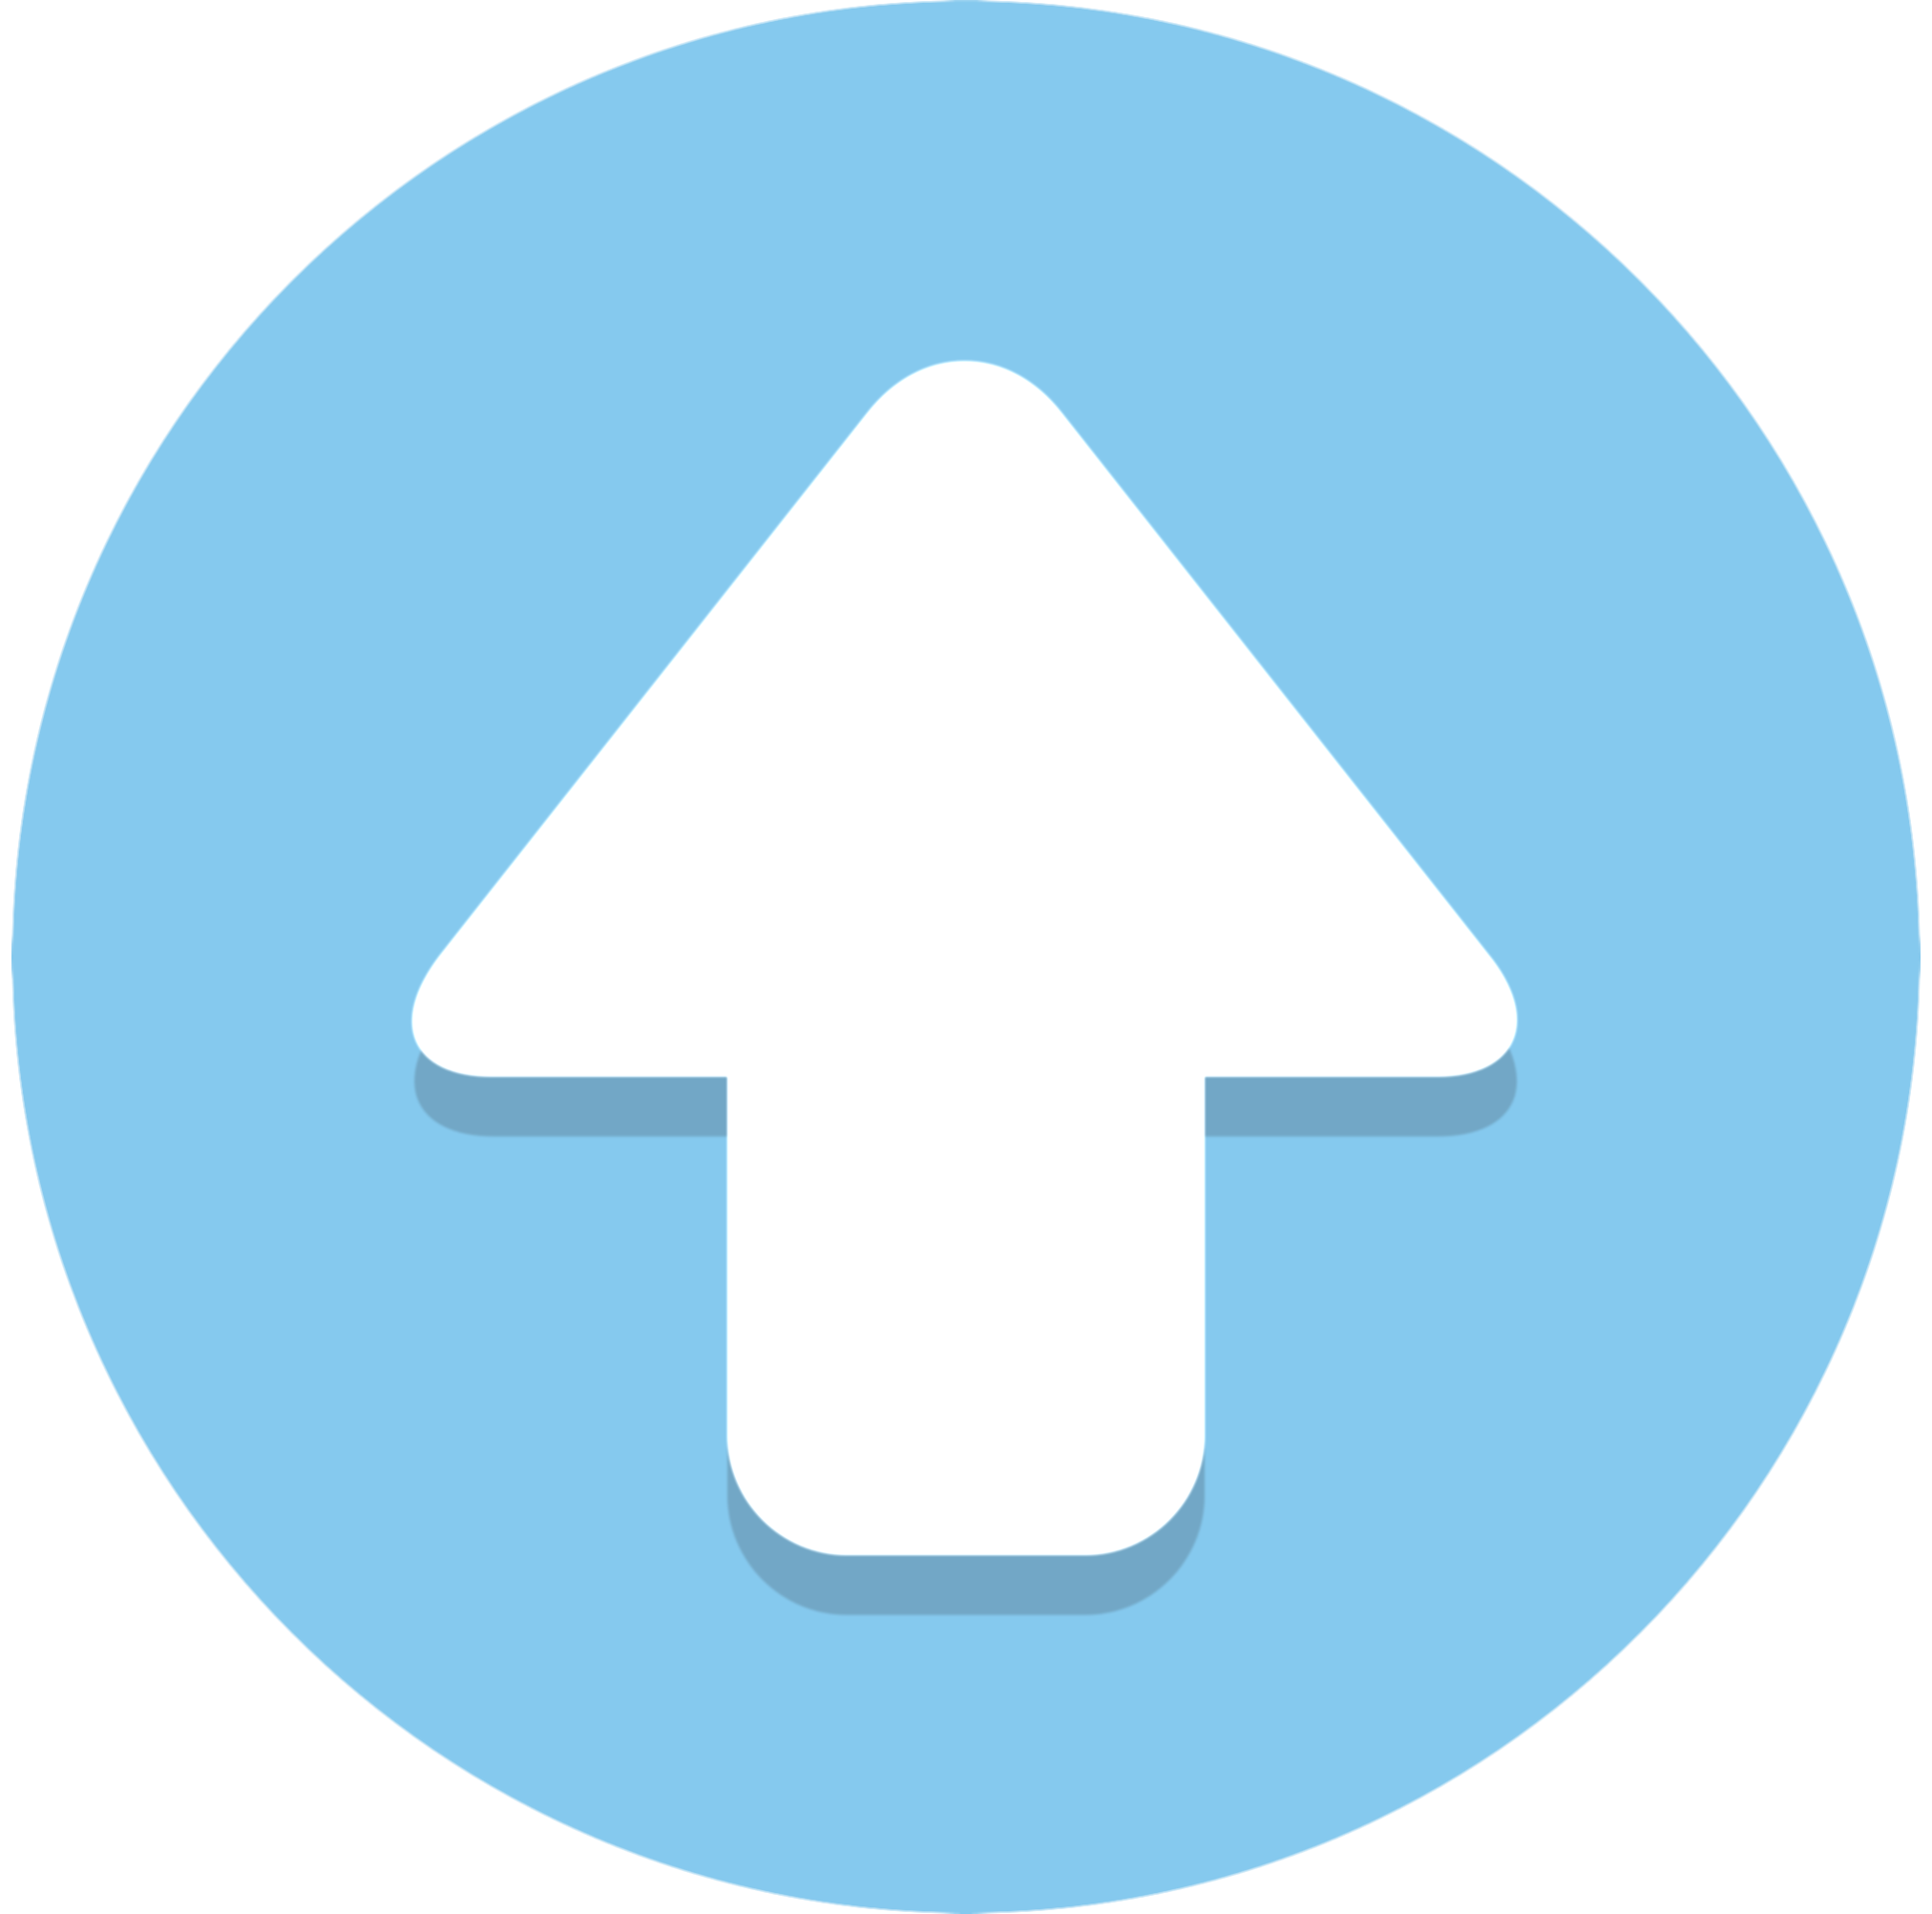 arrow up icon png